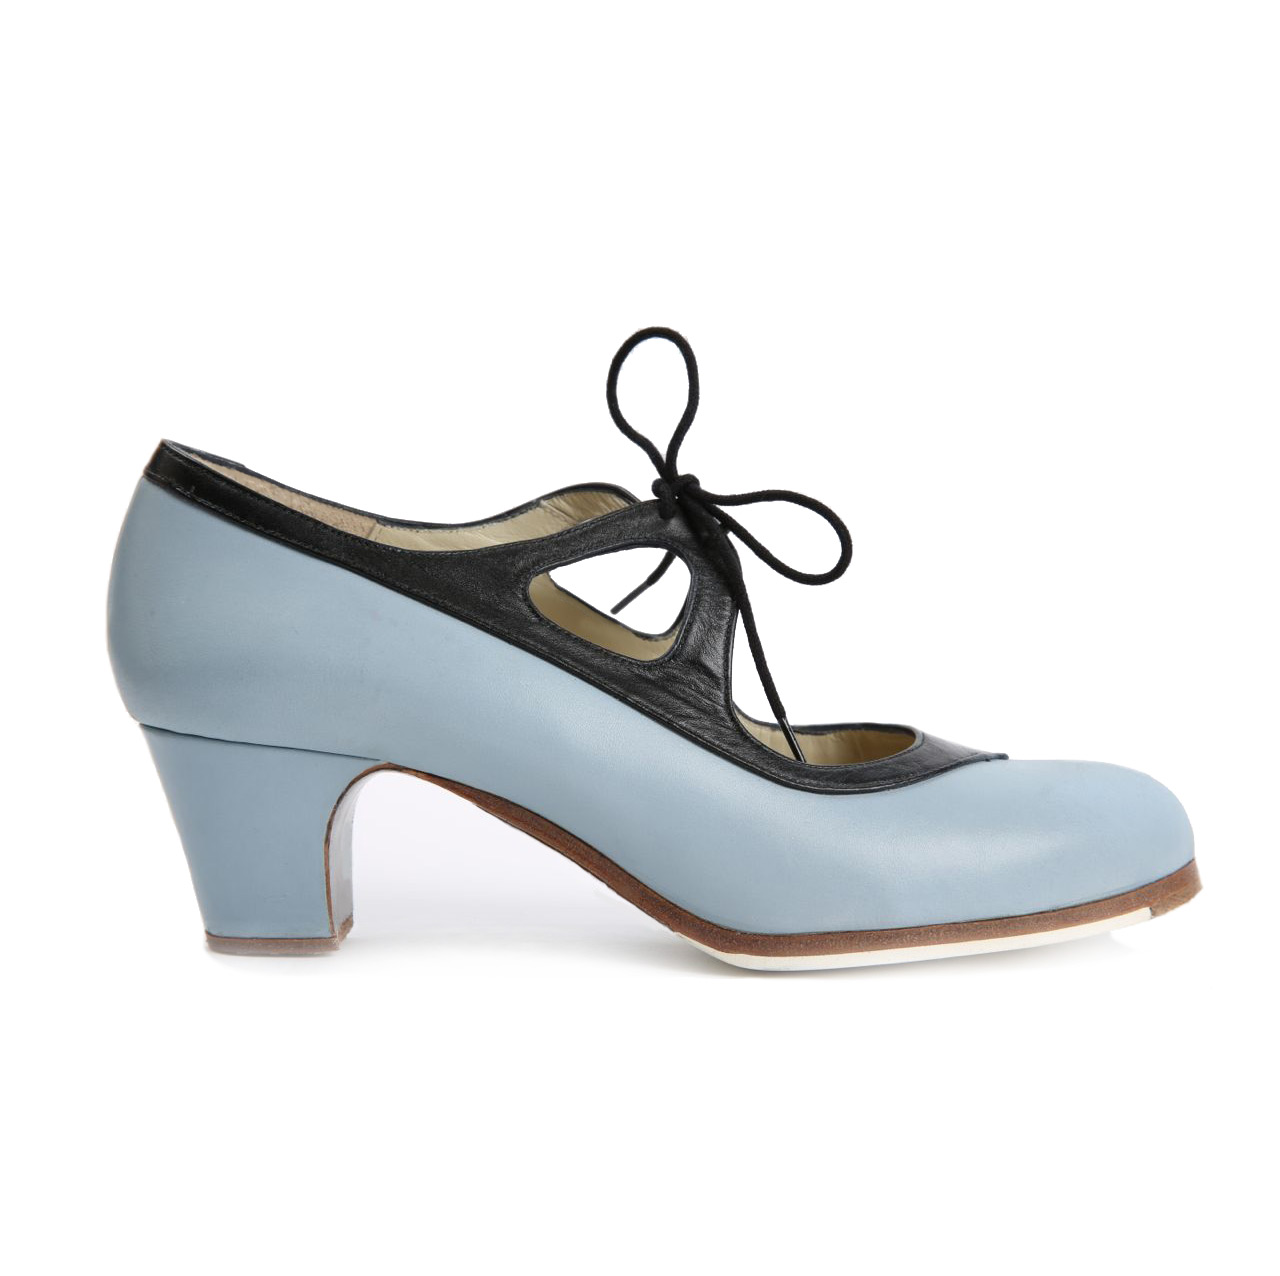 Flamenco dance Shoe Candor Blue/Black